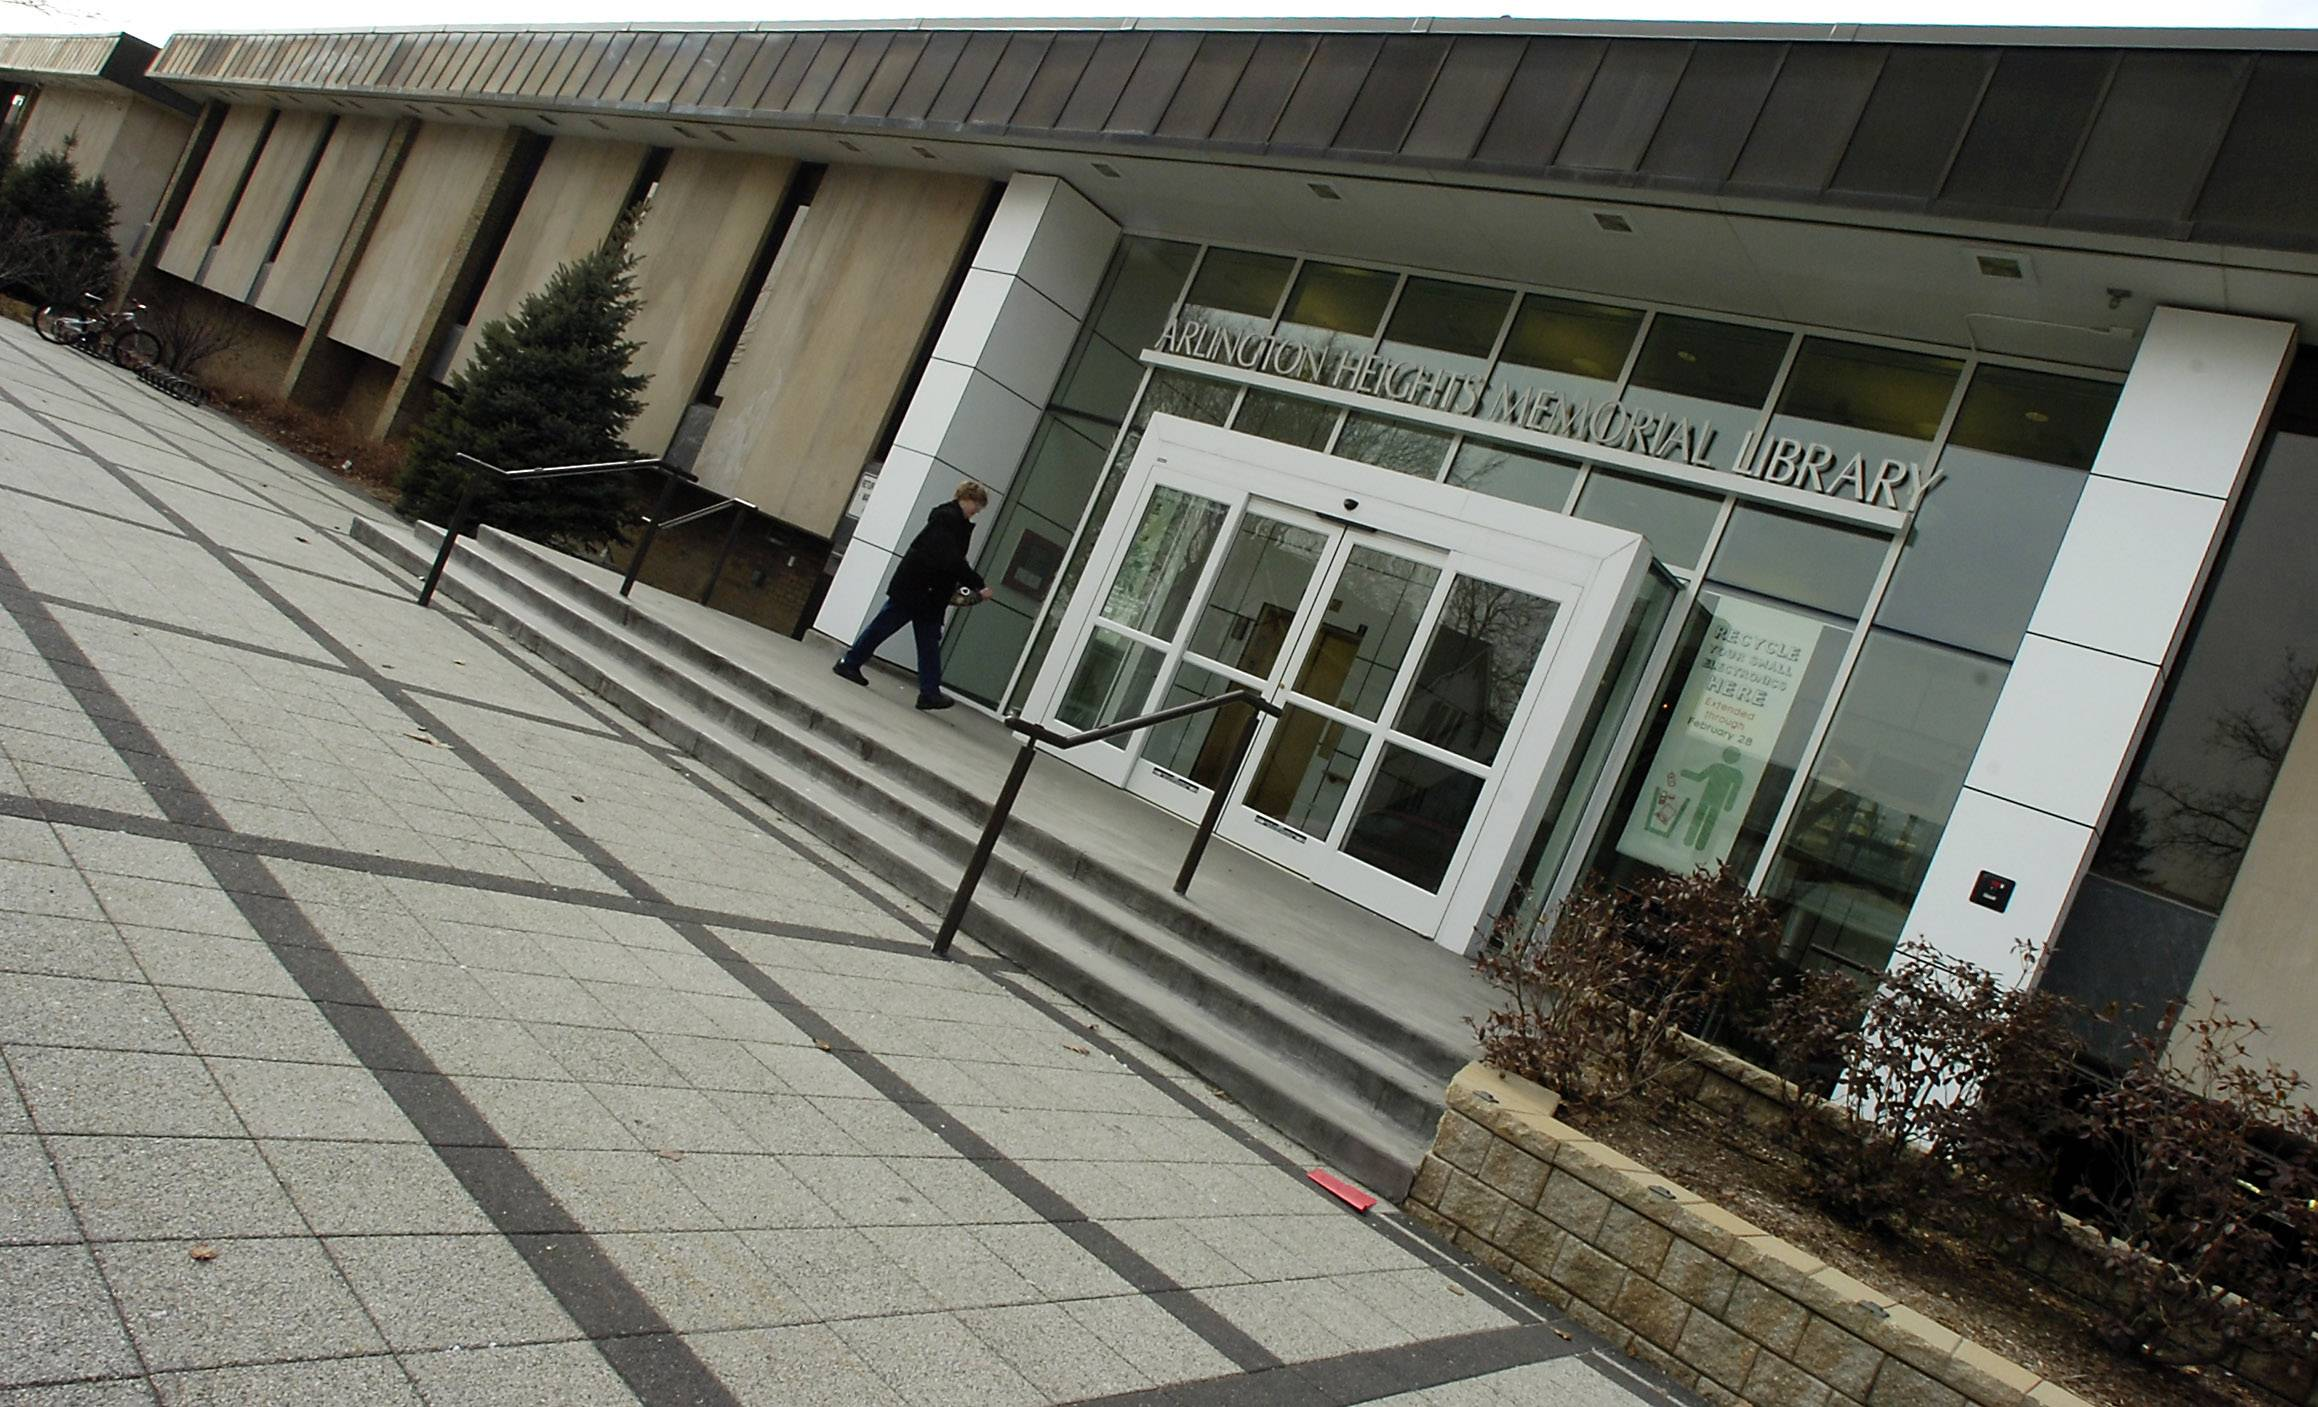 The Arlington Heights Memorial Library plans to replace the 21-year-old roof on a portion of its building. The library budgeted $425,000 for the project.